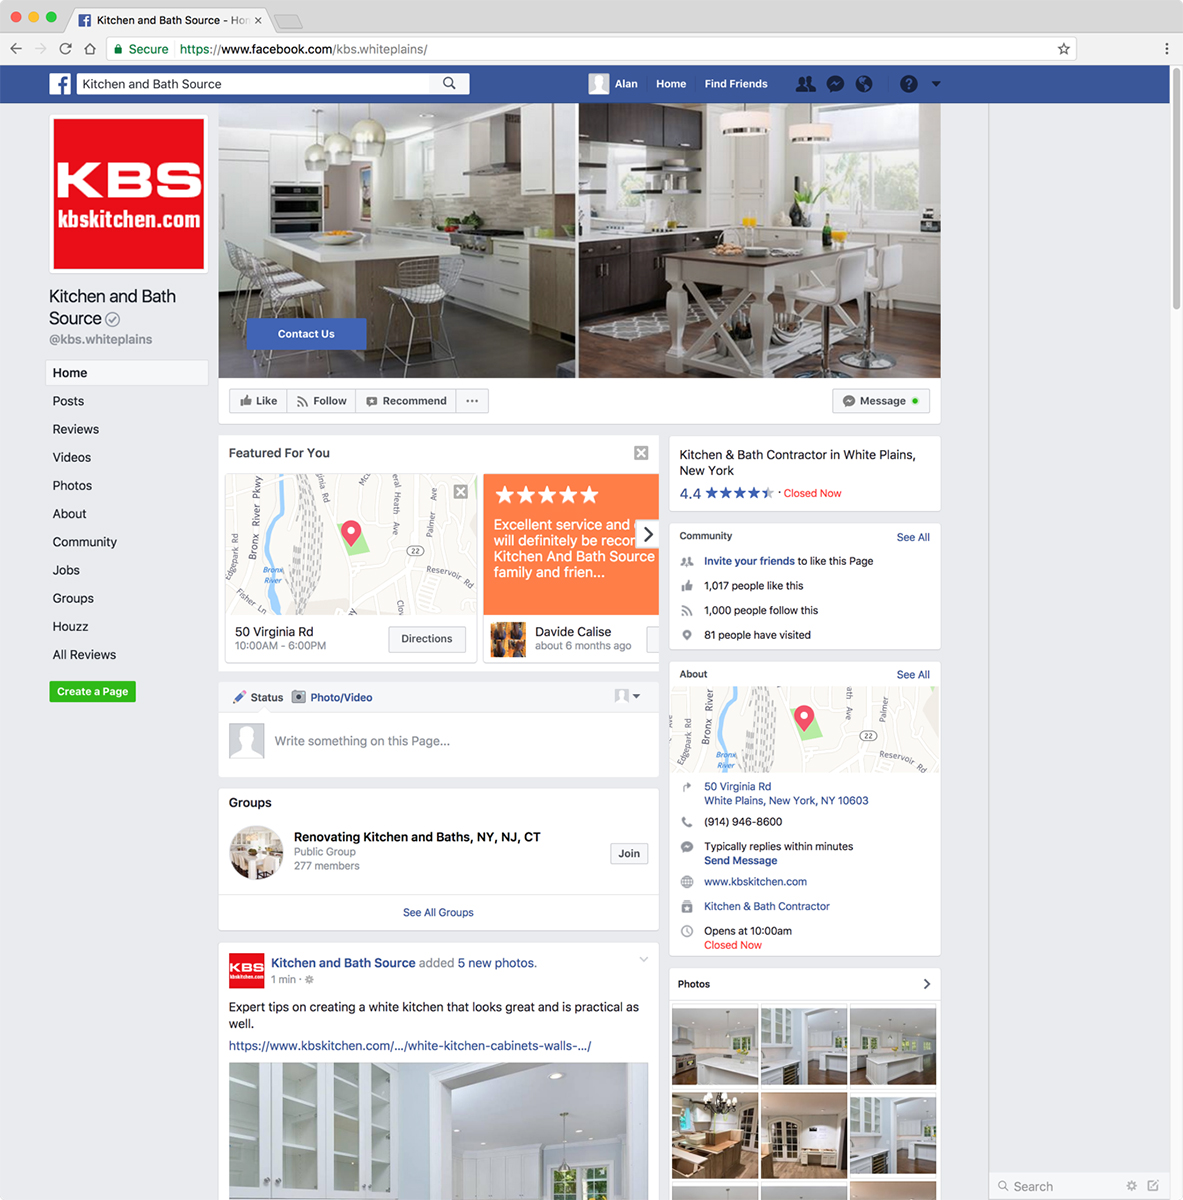 KBS/Kitchen and Bath Source Facebook Page